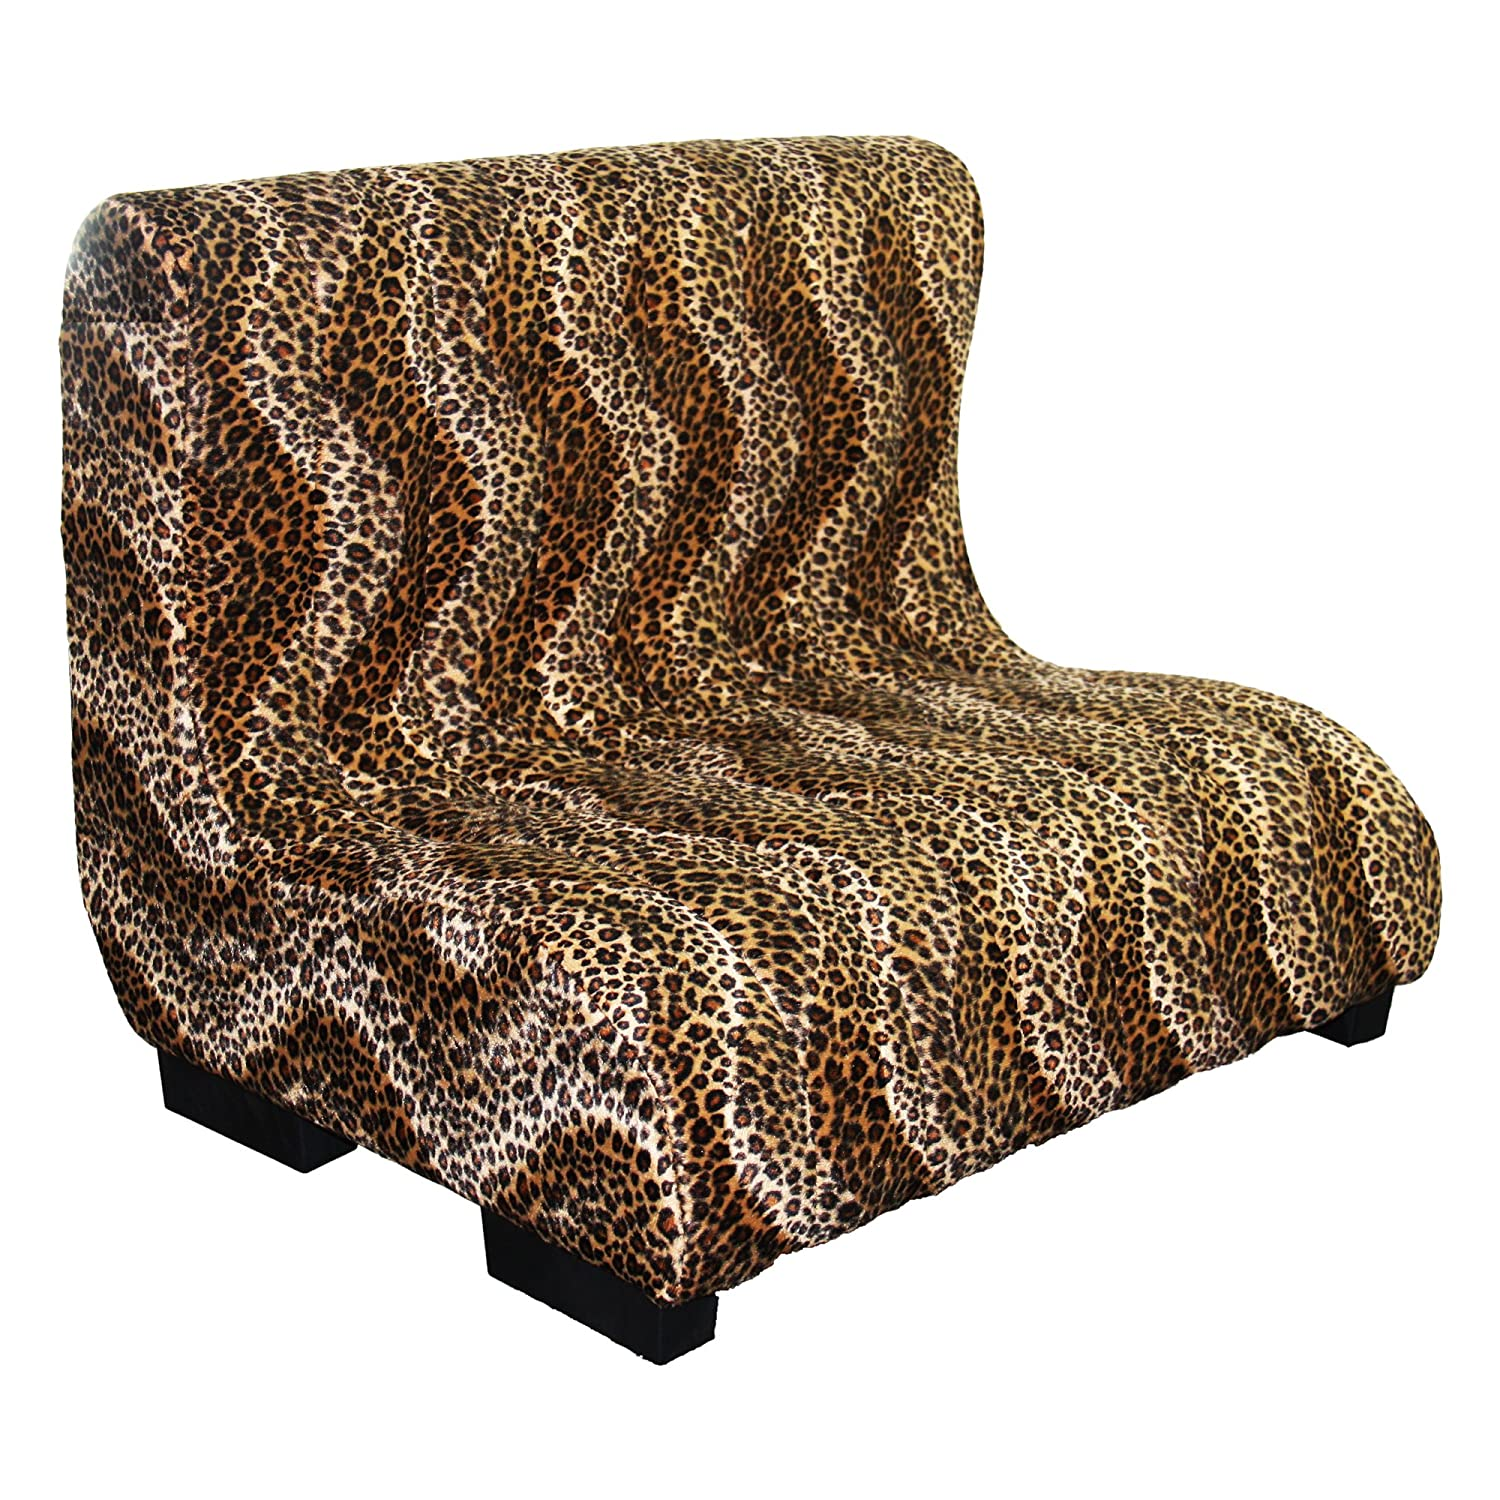 ORE International Plush Leopard Print Tufted Upholstery Pet Bed, 23-Inch